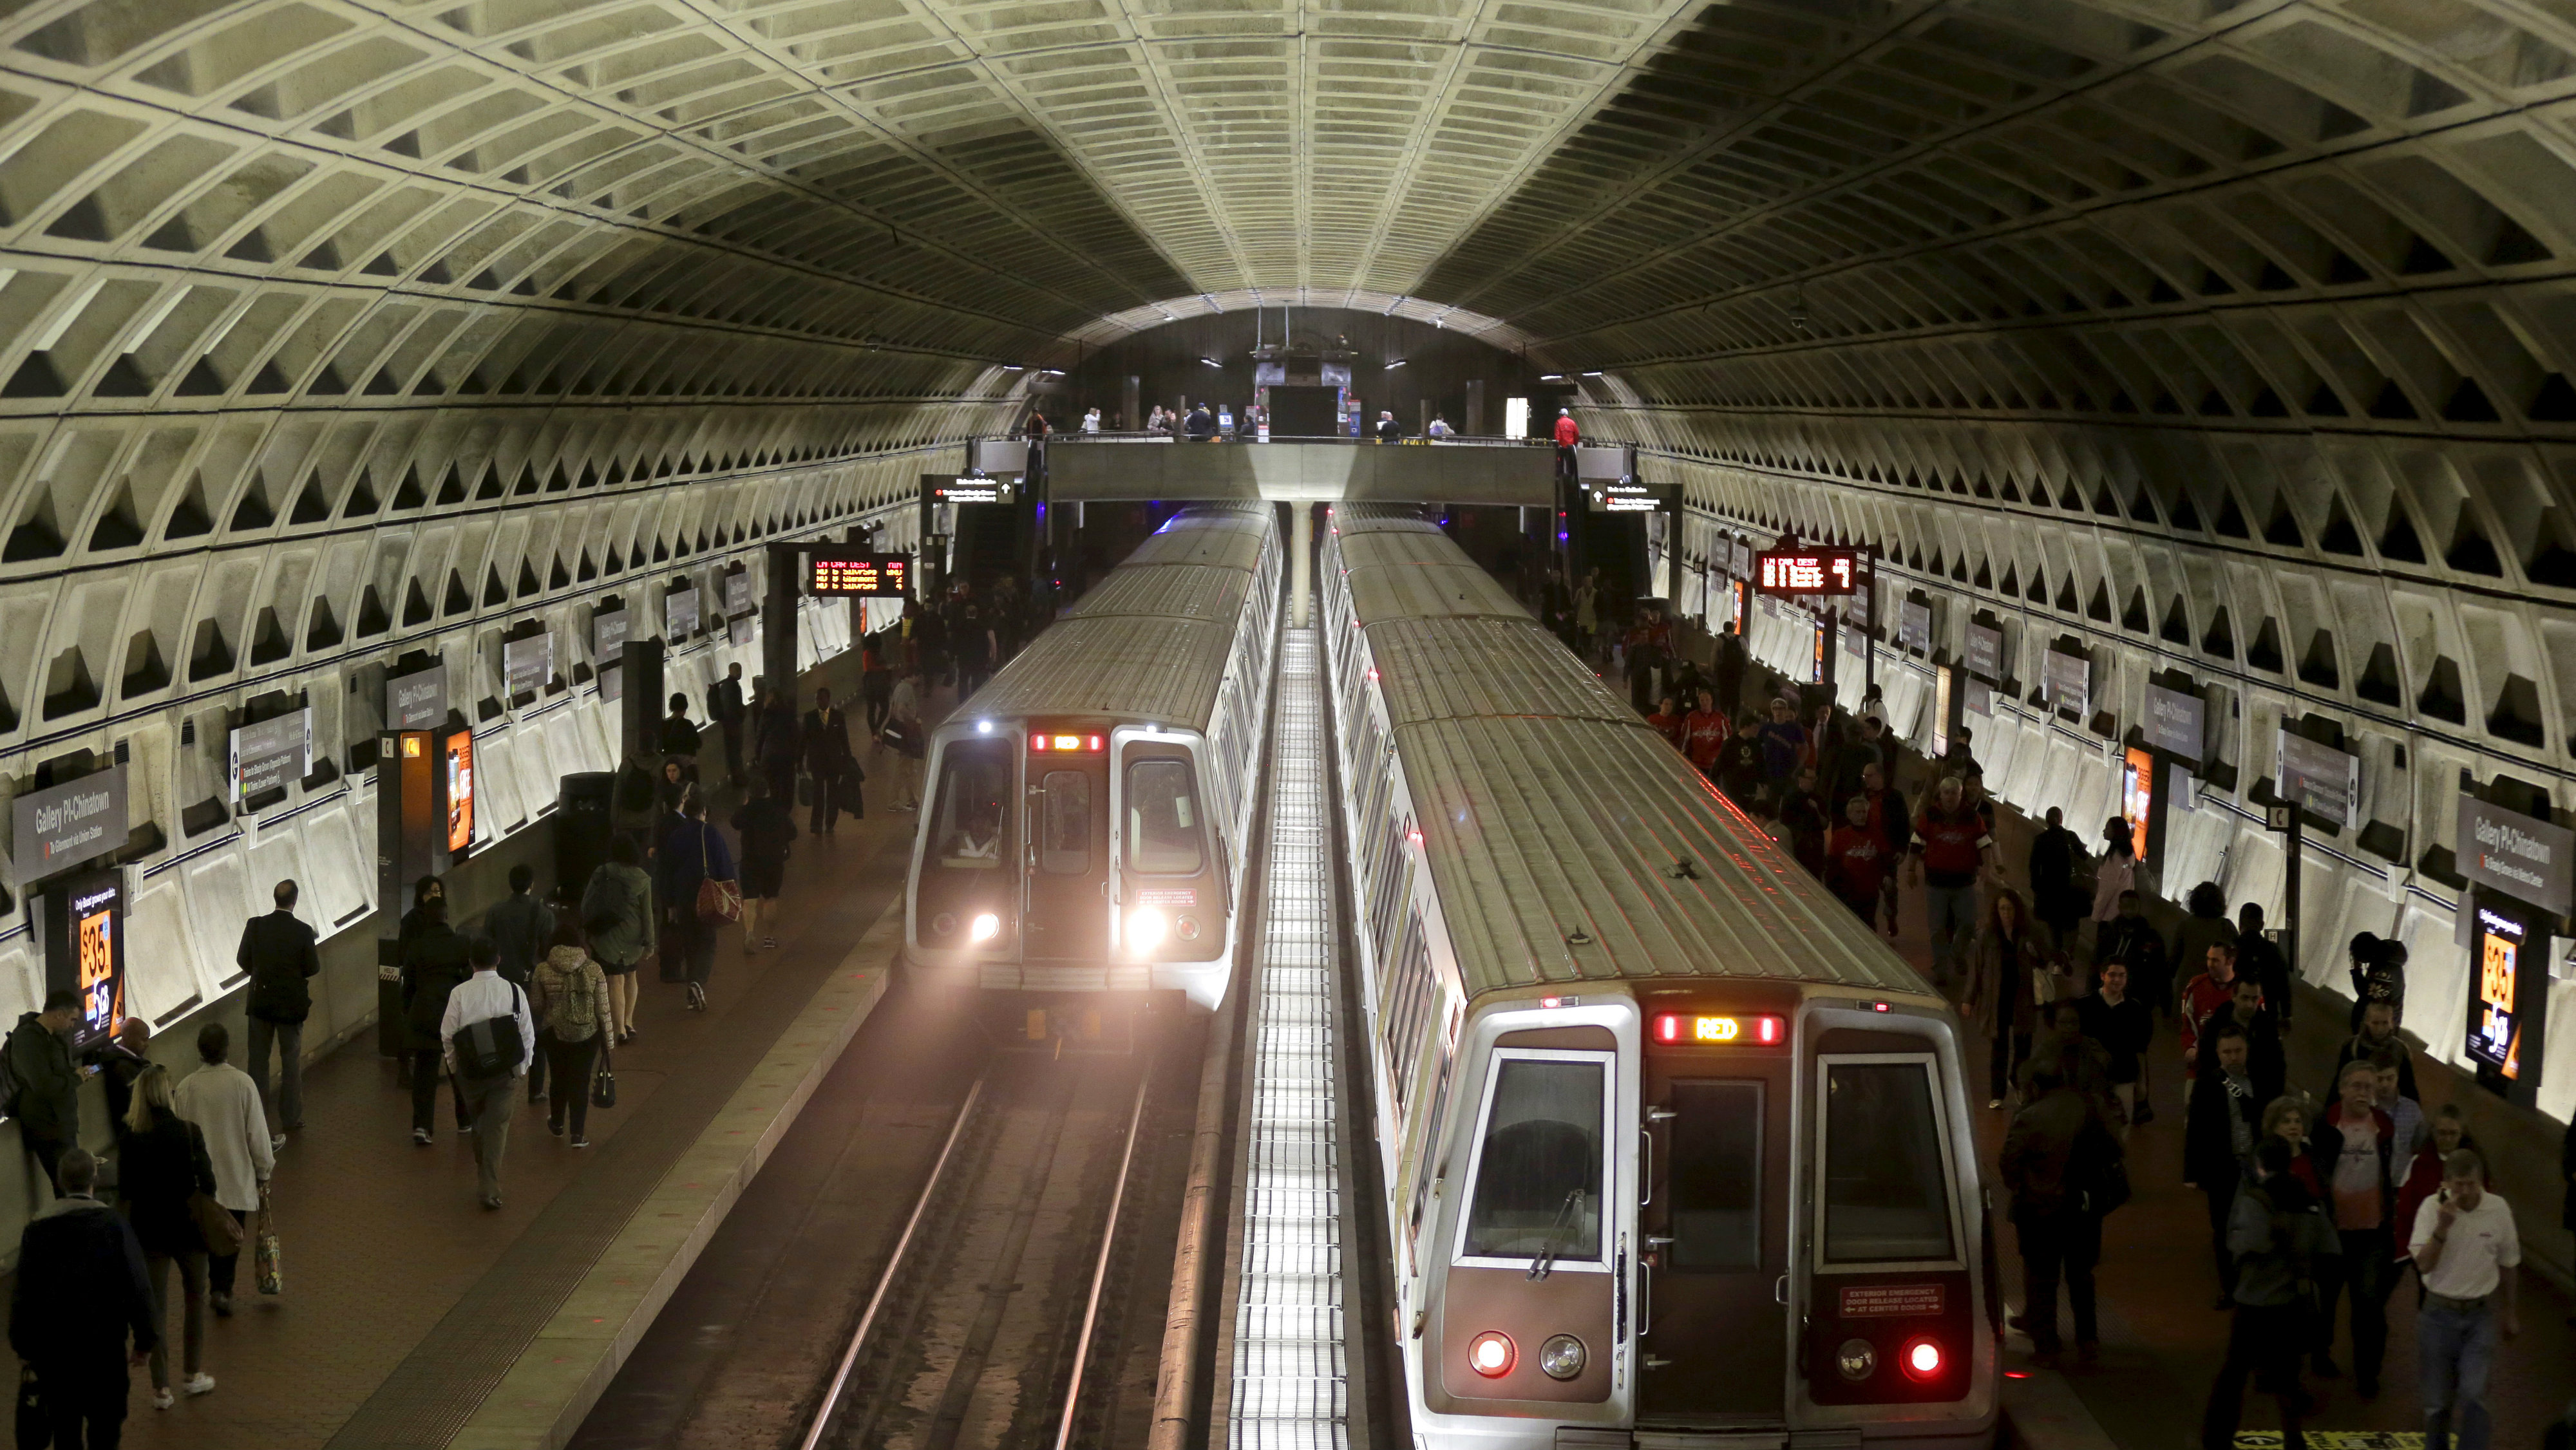 The great hope of fixing America's broken public transit systems rests with Millennials